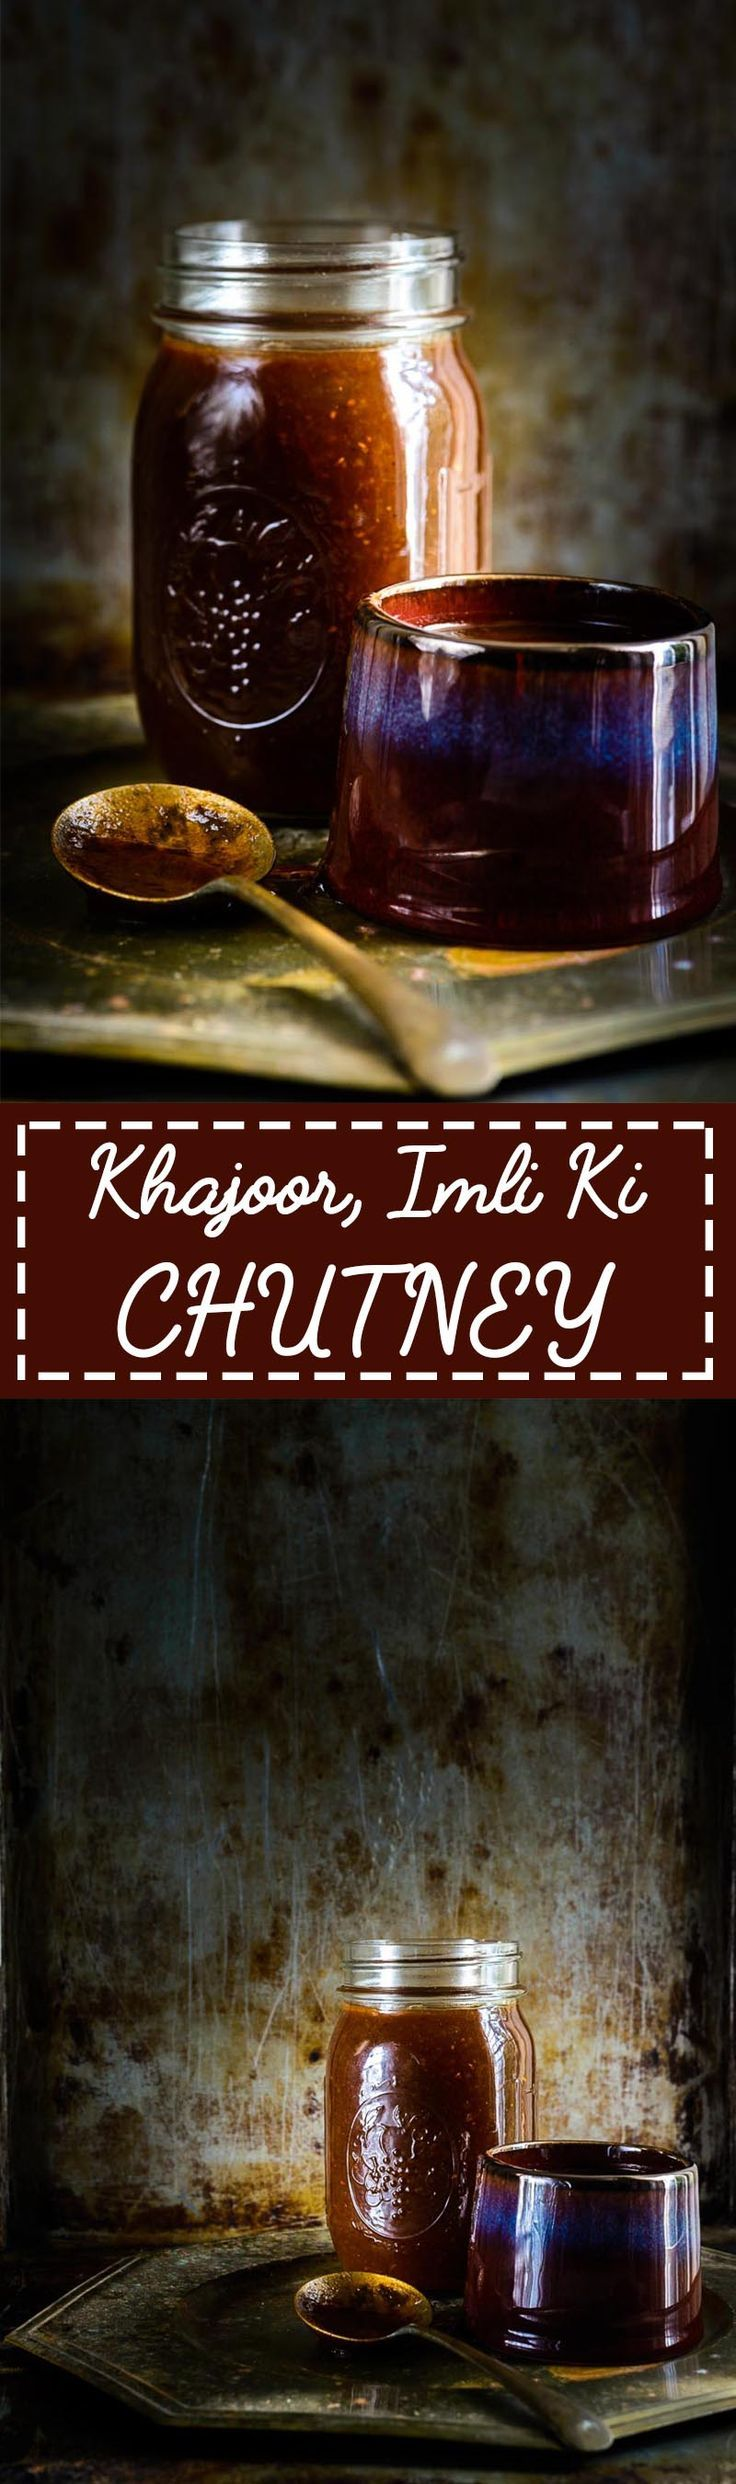 Sweet Tamarind Date Chutney is made using Imli and Khajoor and is easy and quick to make Indian accompaniment which has a sweet and sour tastes with a spicy hint. This Chutney is a must for making Chaat and can be made and kept in refrigerator for up to a month. Indian I Chutney I Accompaniment I Vegan I Recipe I Gluten Free I